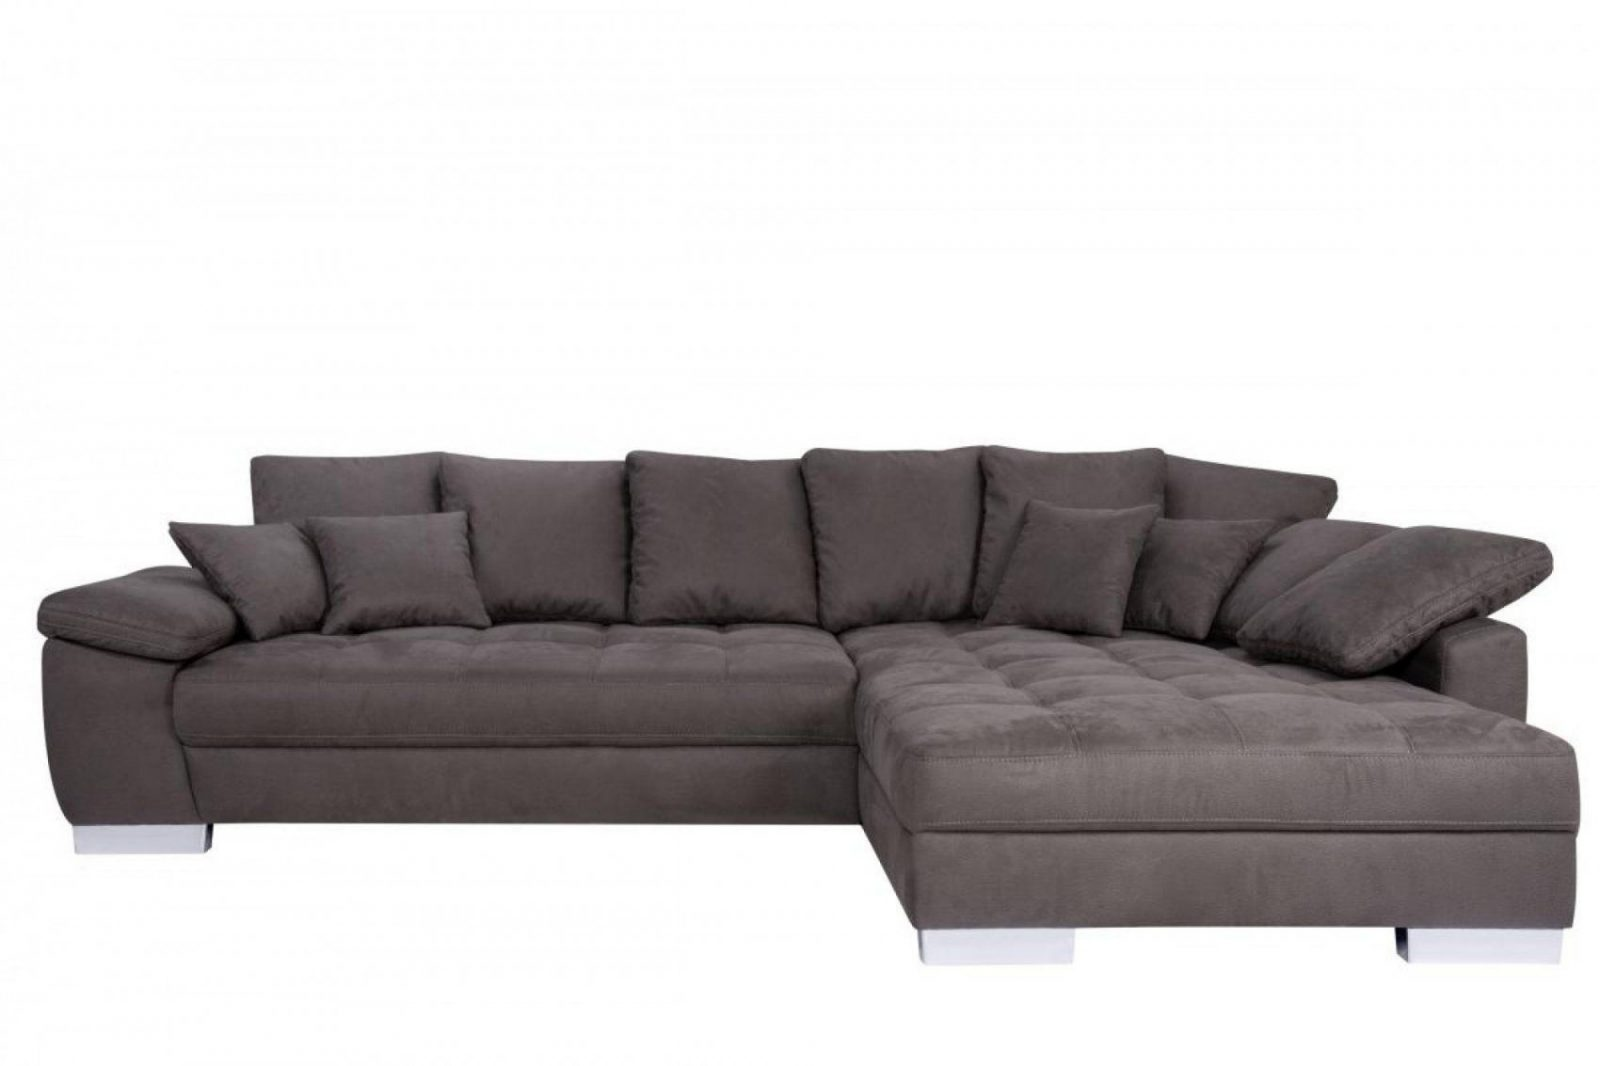 Fresh Big Sofa Poco 36 With Big Sofa Poco Ba¼Rostuhl – Homemaison von Big Sofa Poco Domäne Bild